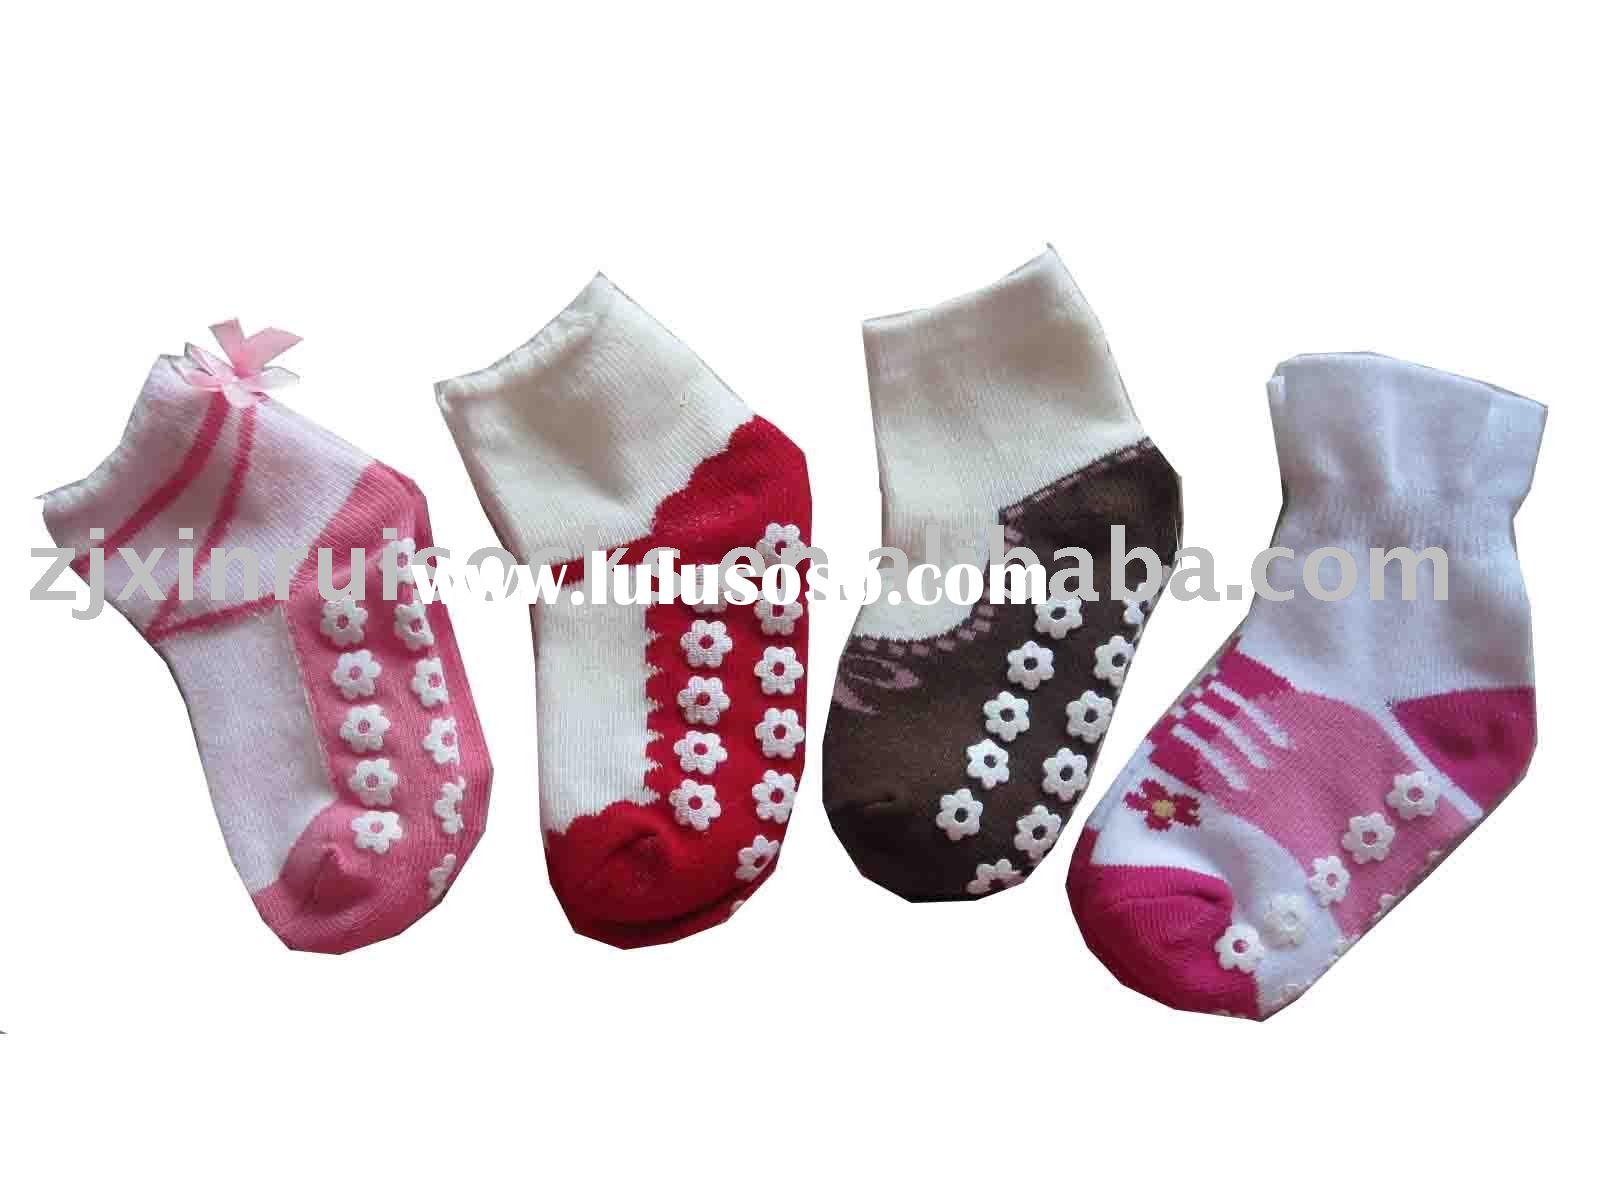 Baby cotton knitted socks with anti-slip on sole